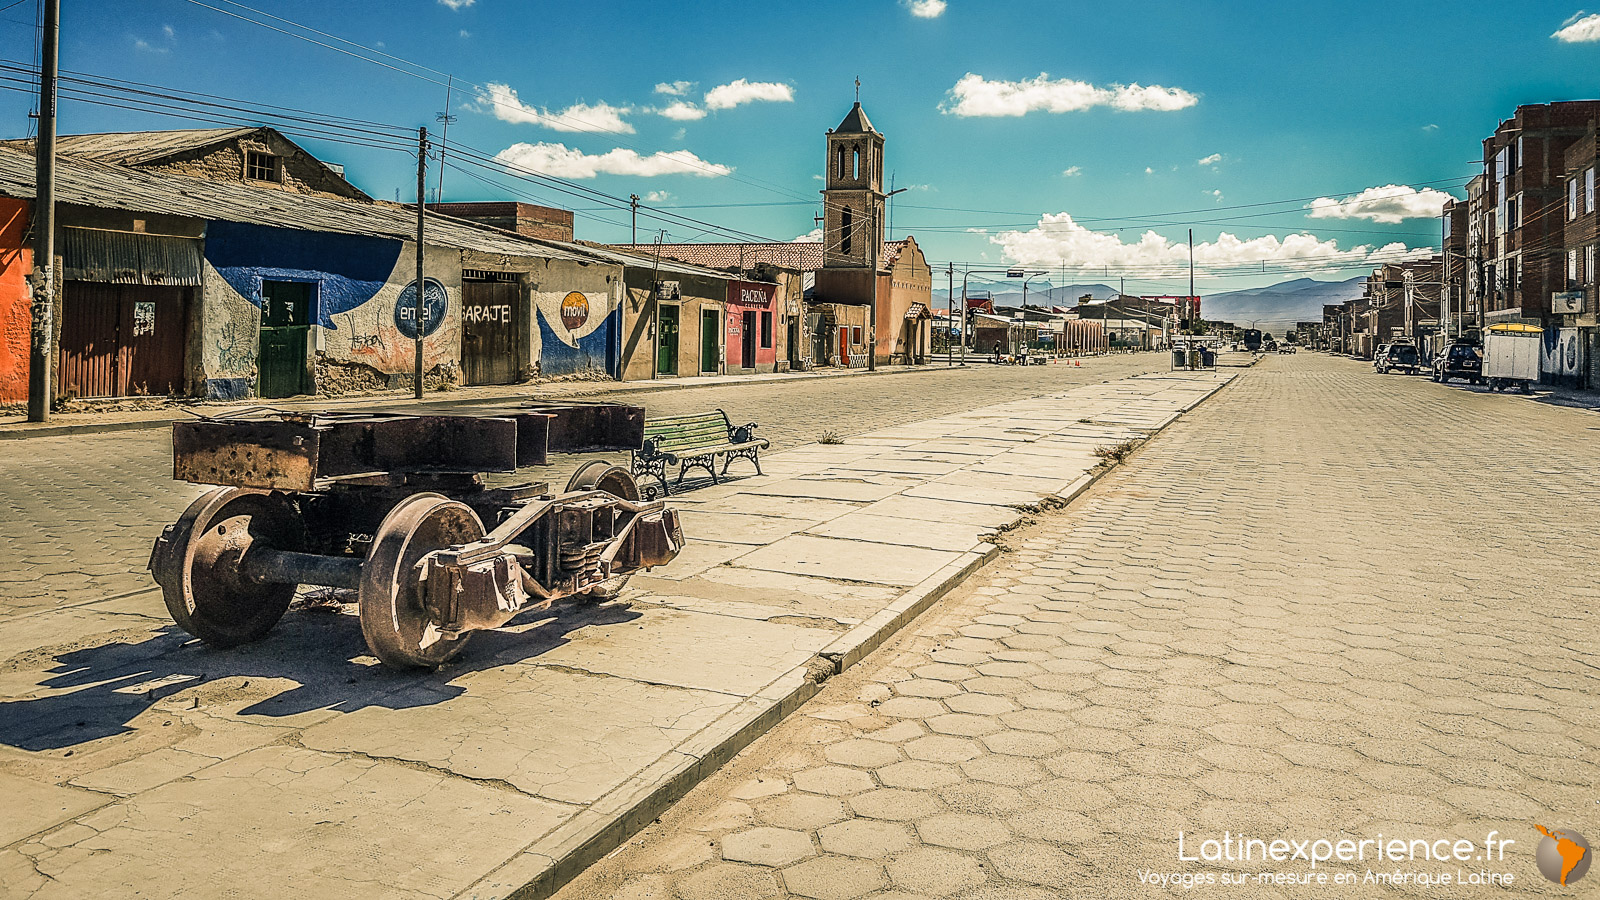 Bolivie - road trip - Uyuni - Latinexperience voyages